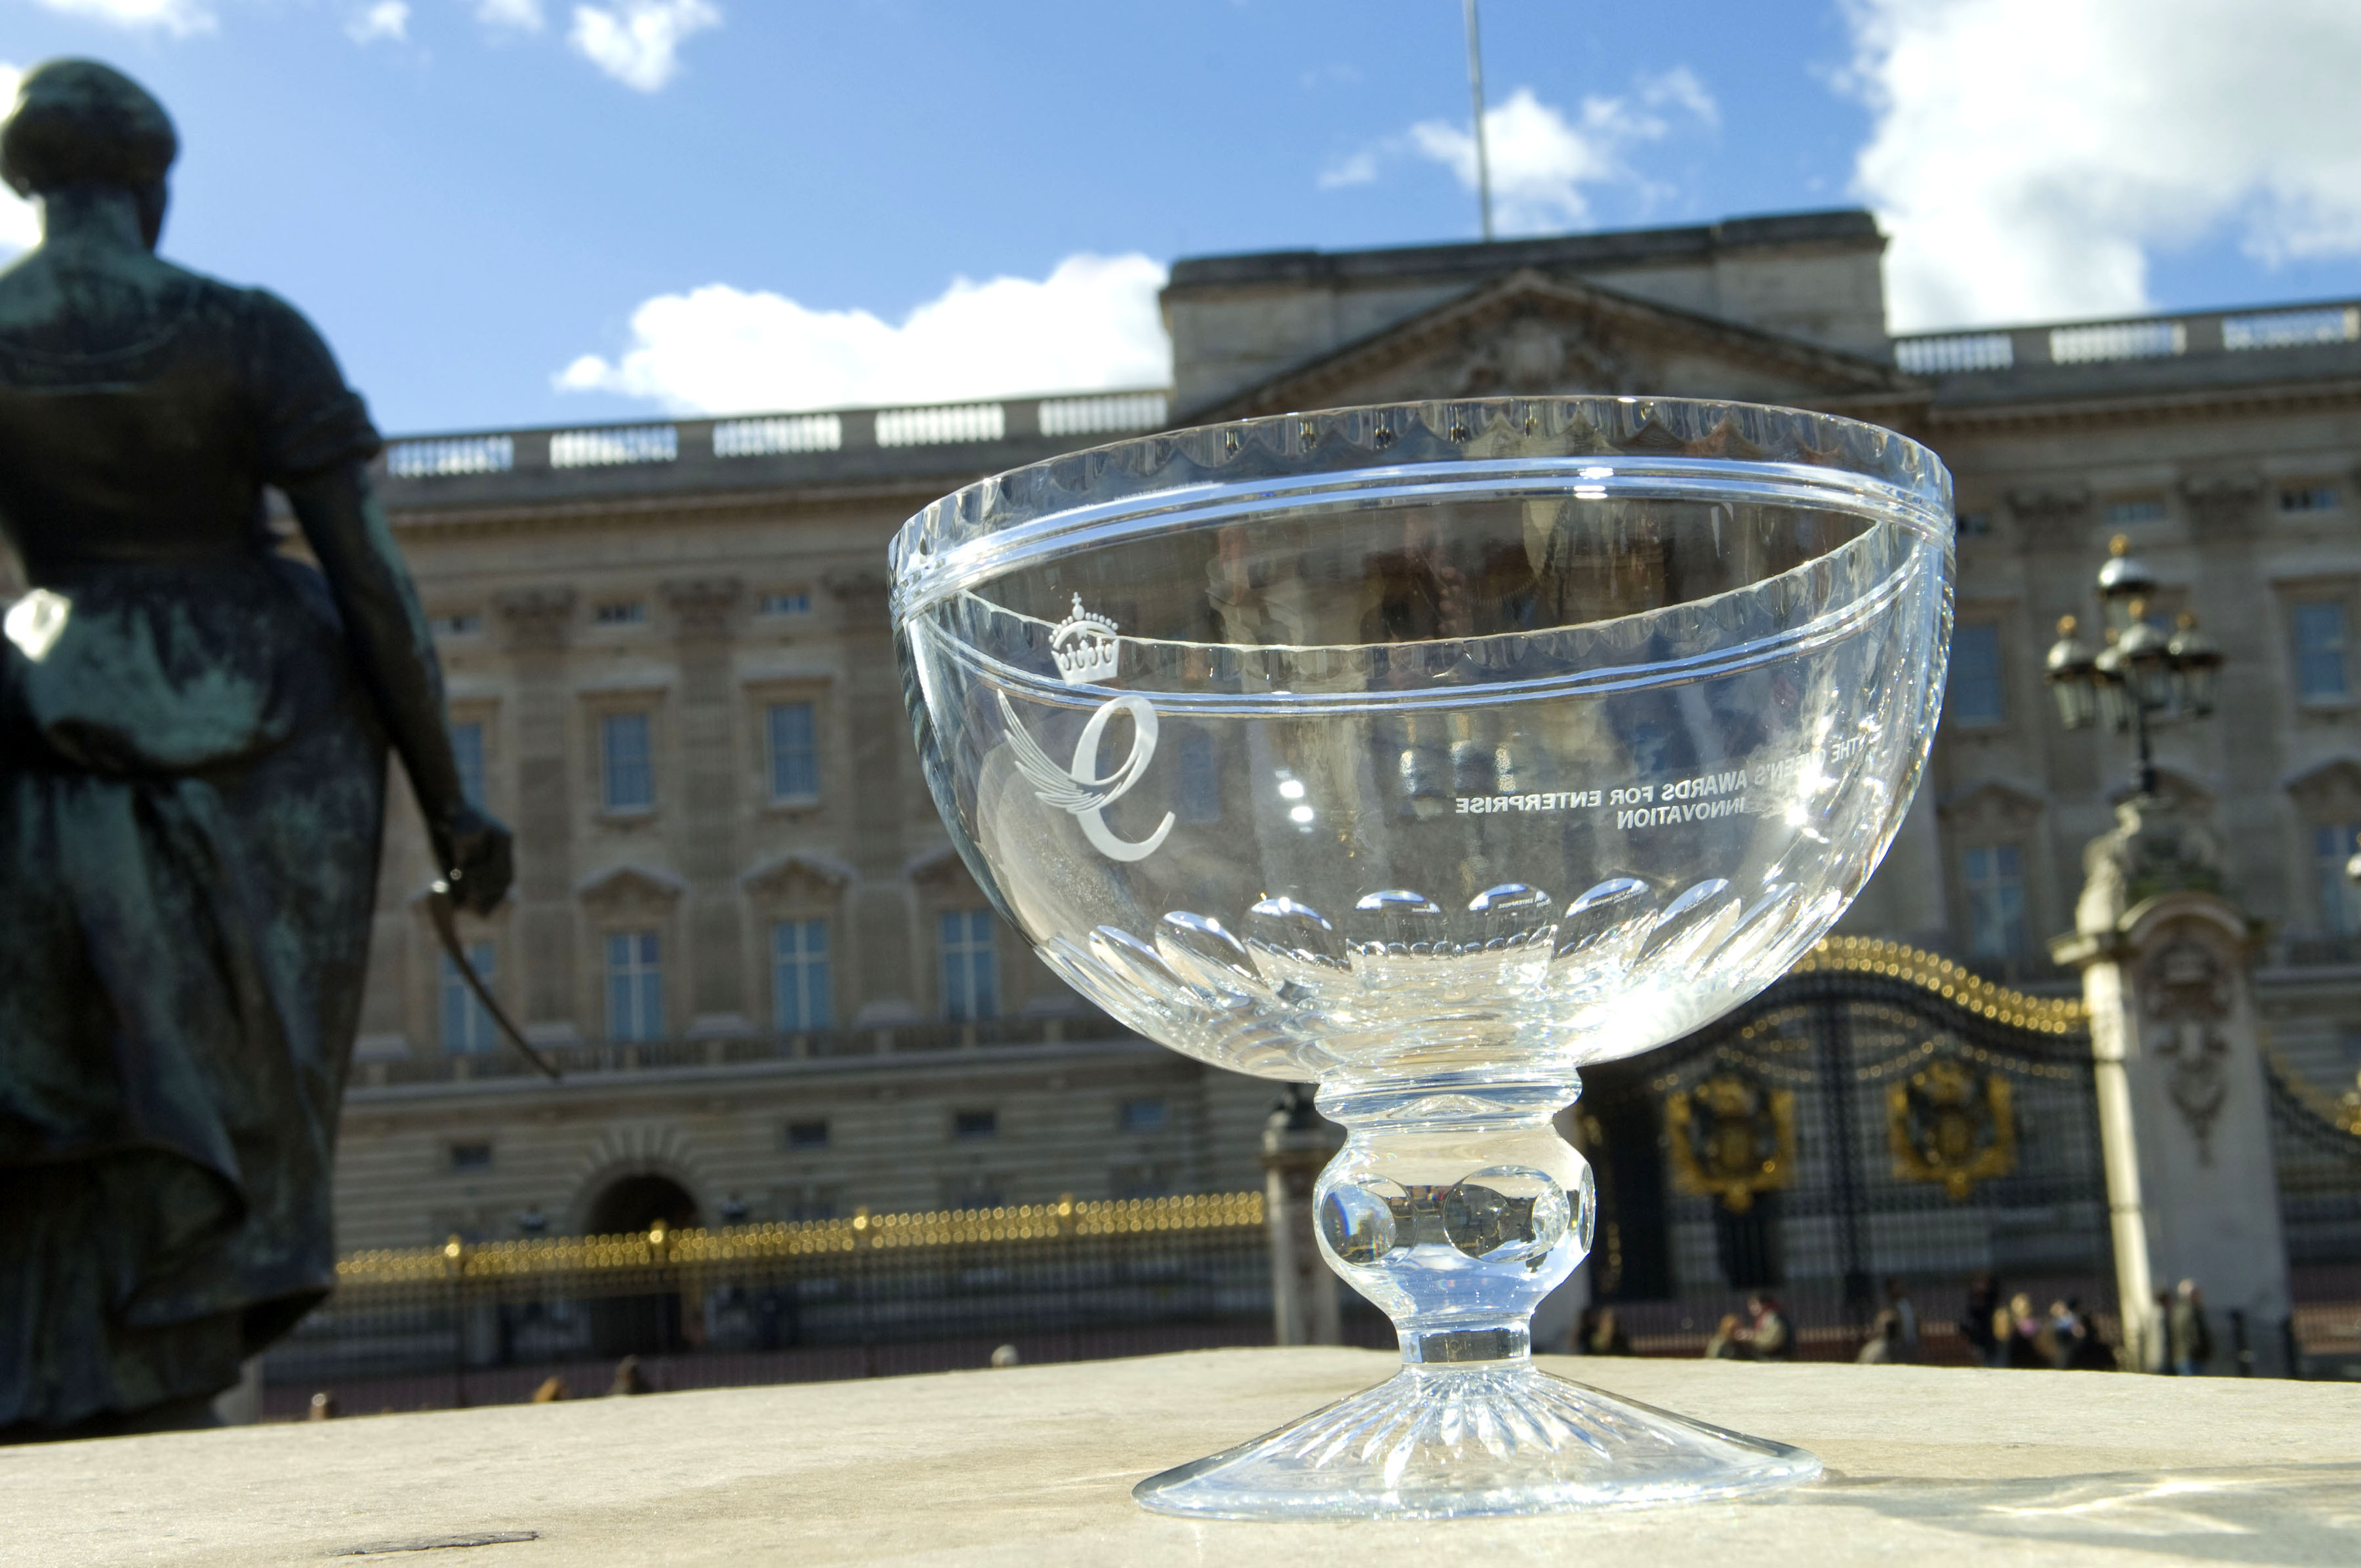 Queens Awards bowl at Buckingham Palace